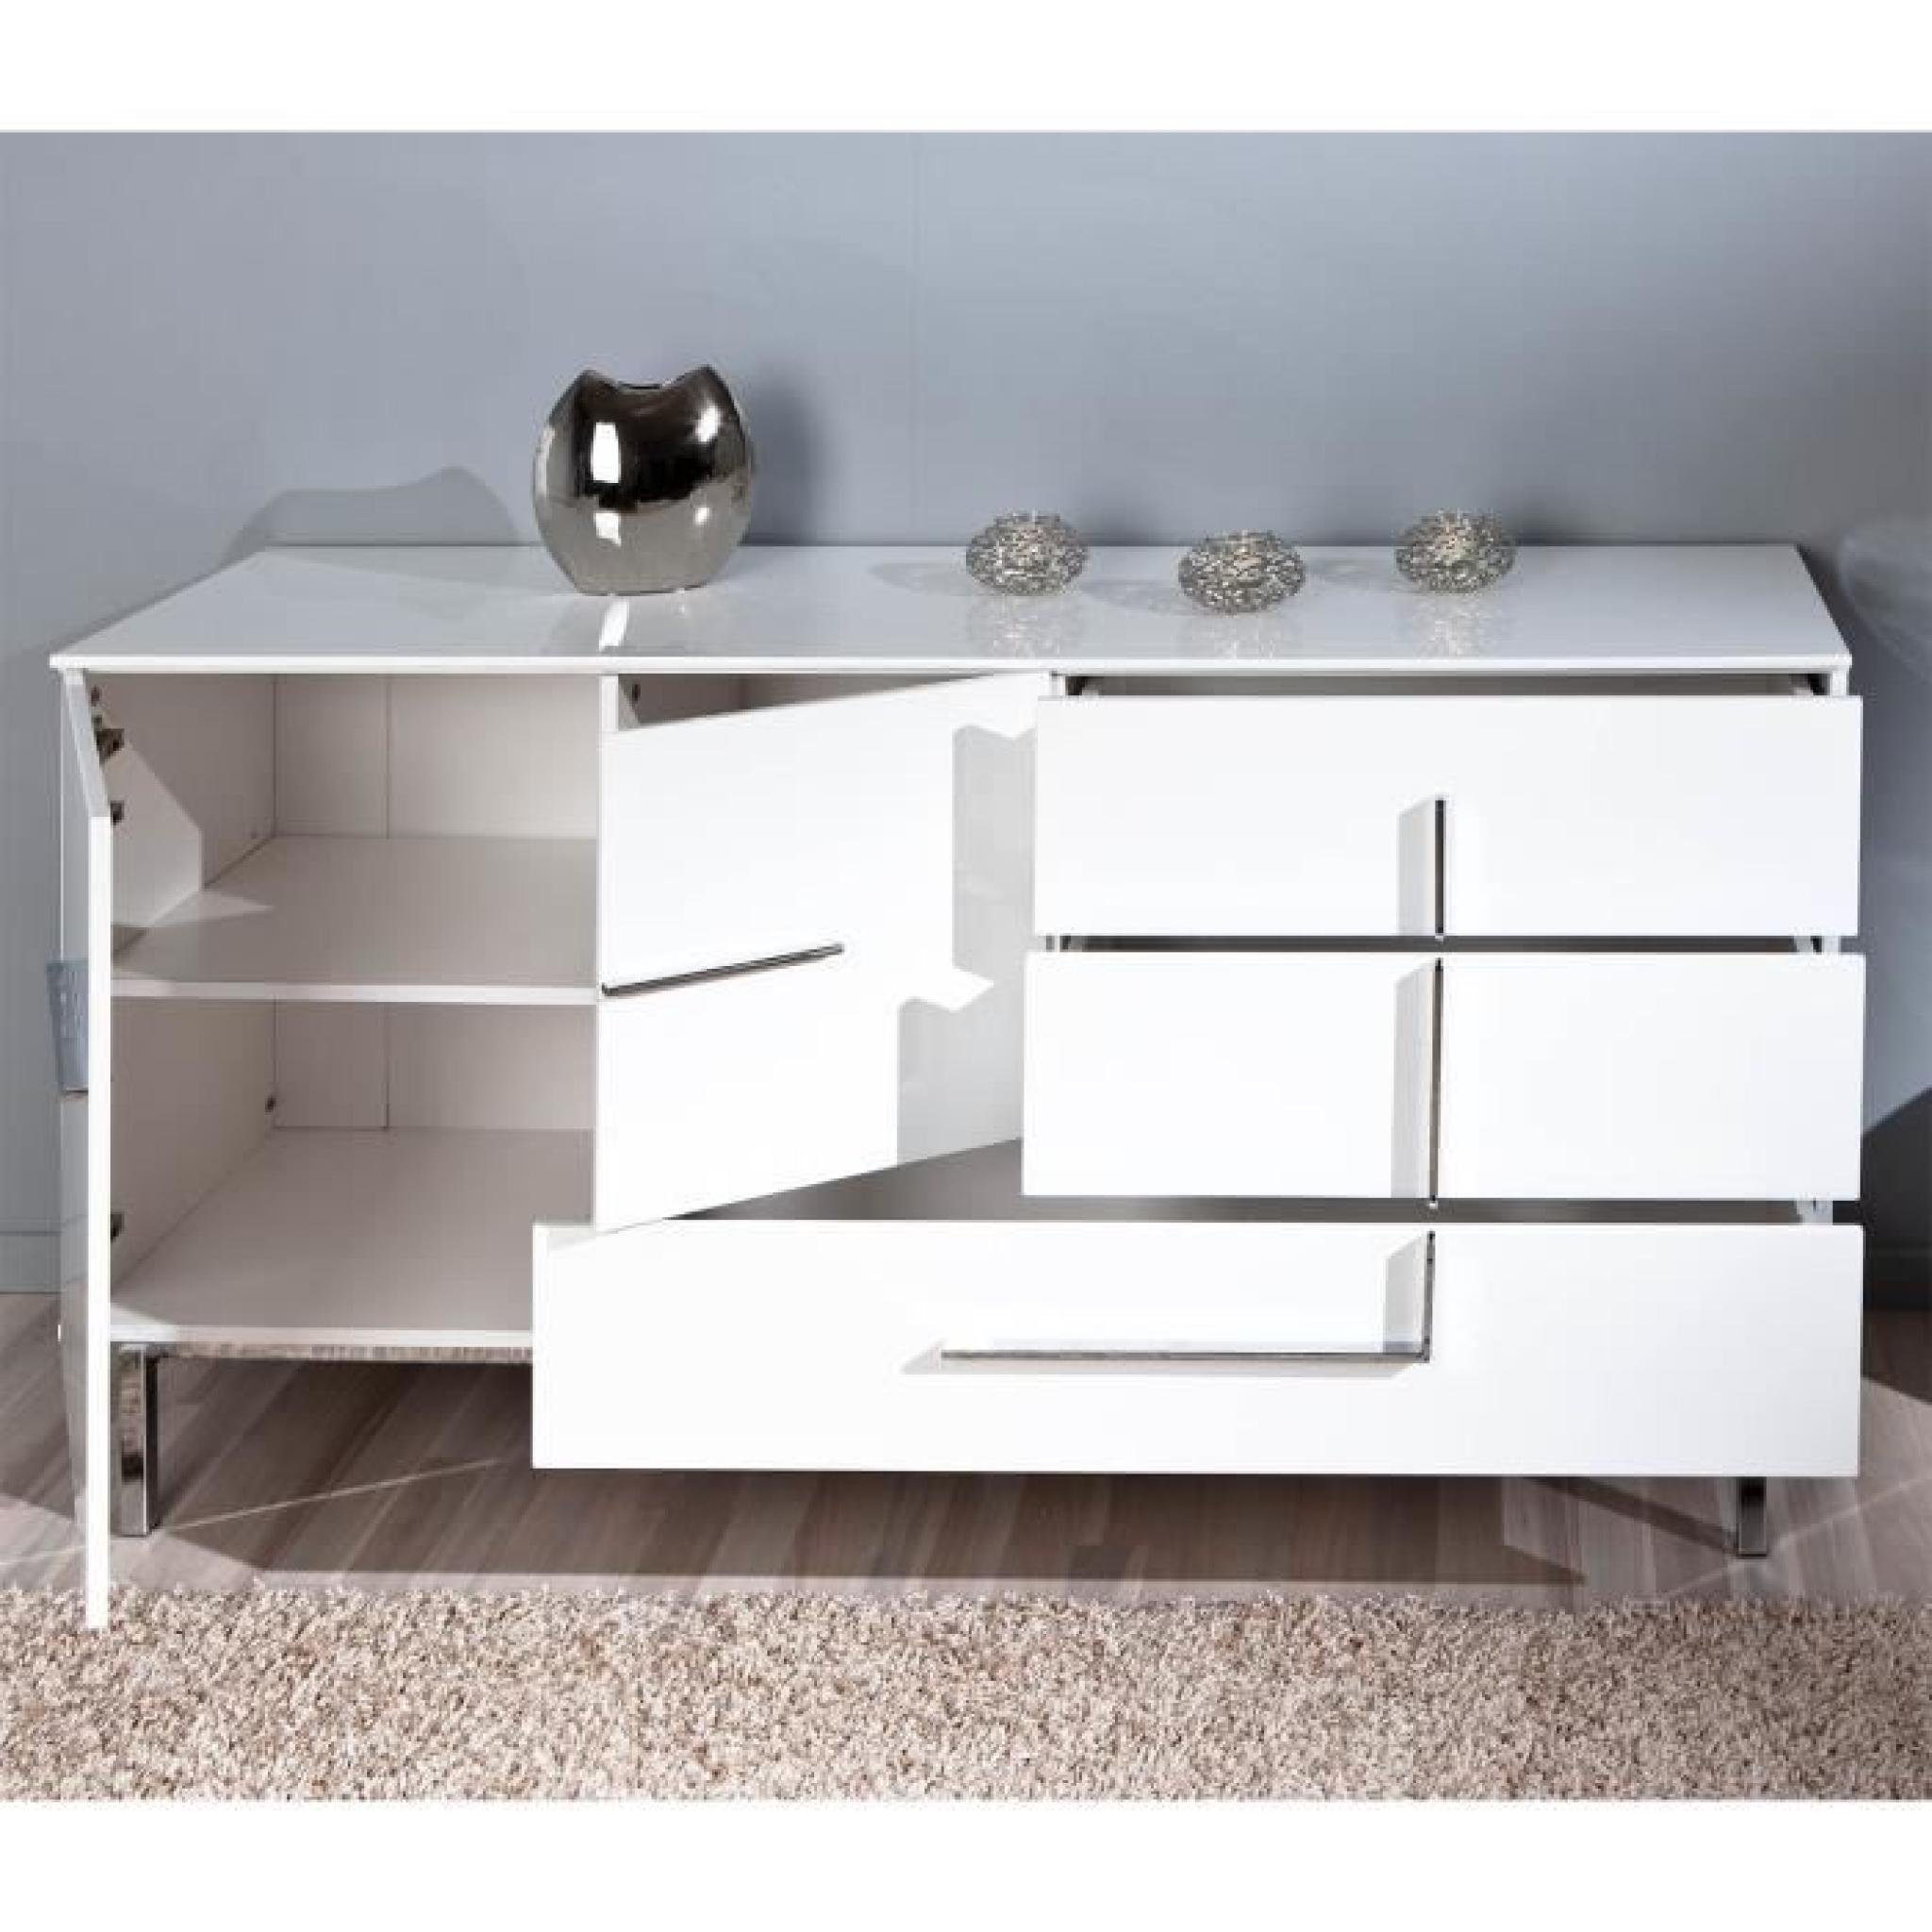 Buffet Bahut Design Commode Buffet Bahut Bas Moderne Design 2 Porte Achat